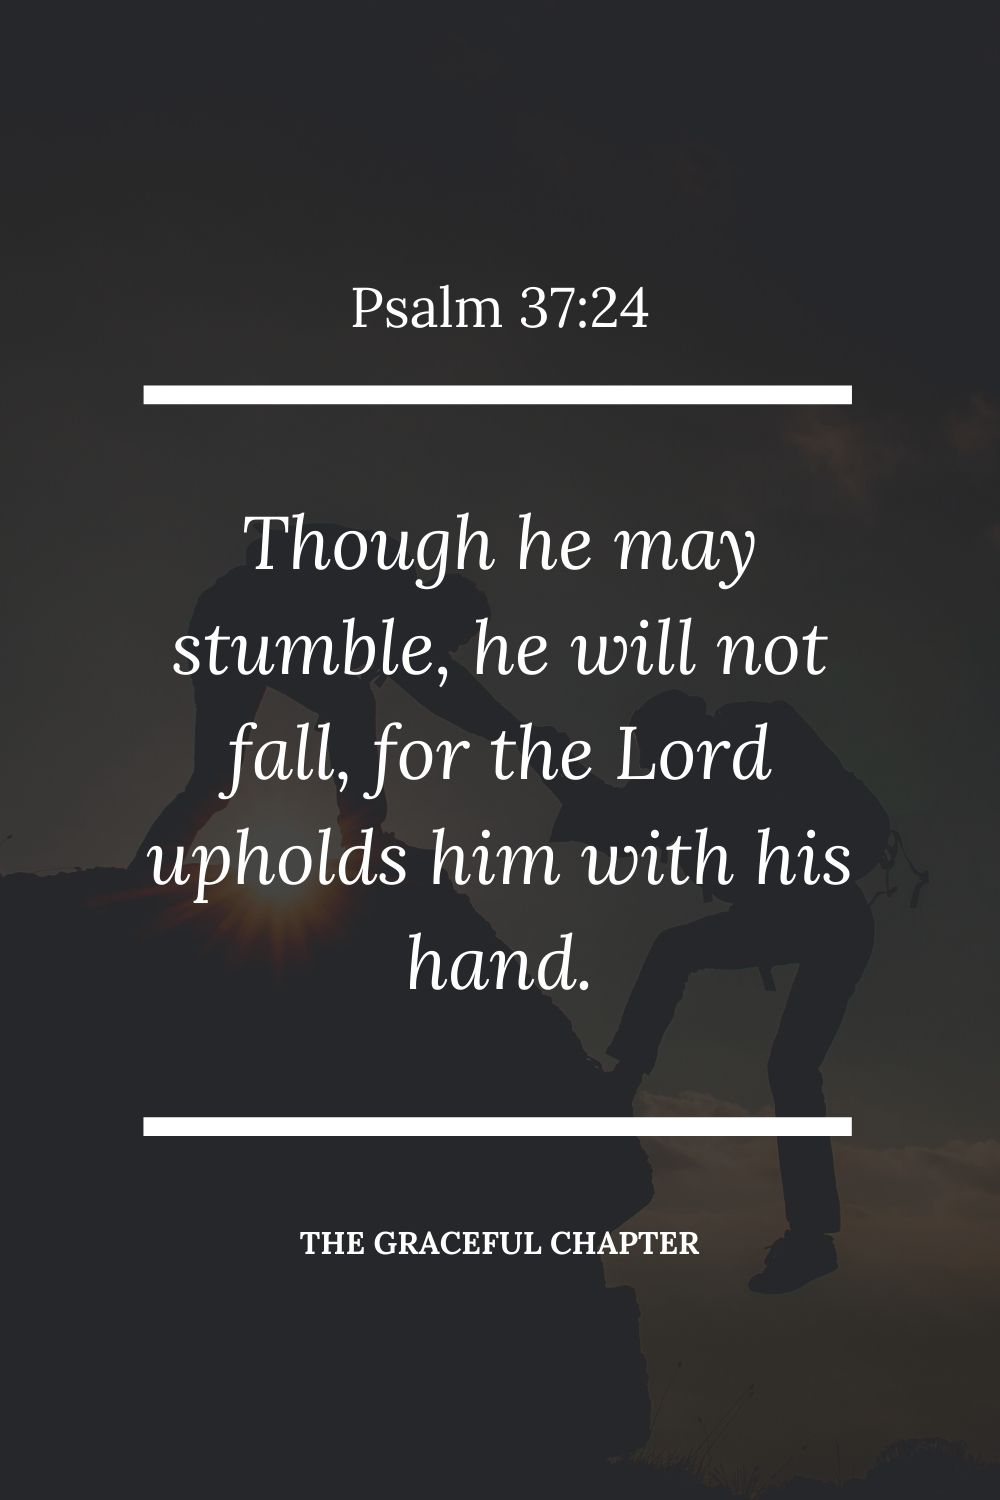 Though he may stumble, he will not fall, for the Lord upholds him with his hand.  Psalm 37:24